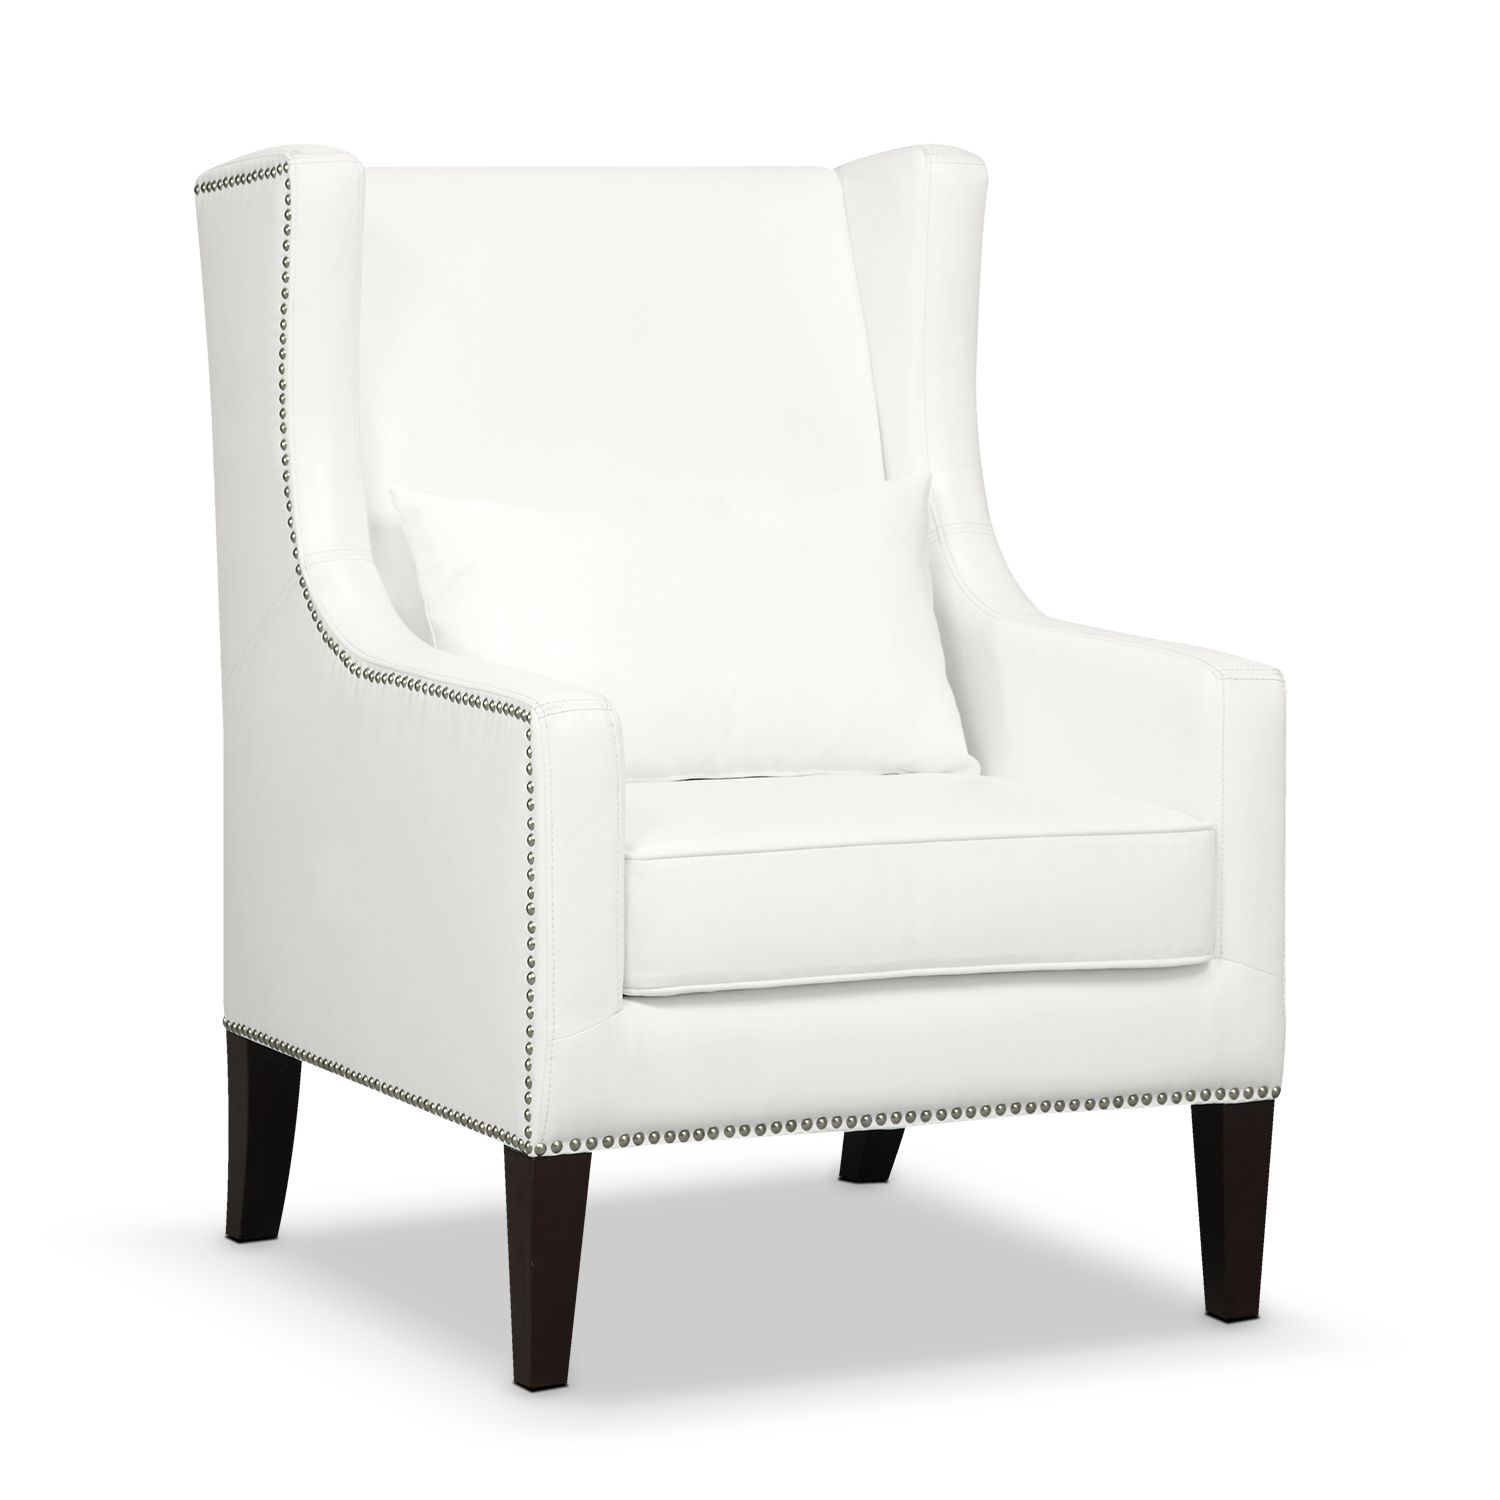 white leather armchair winging it modern sophistication meets enduring tradition 21970 | eb935a8d15bd6f4b60d8b47718951c60